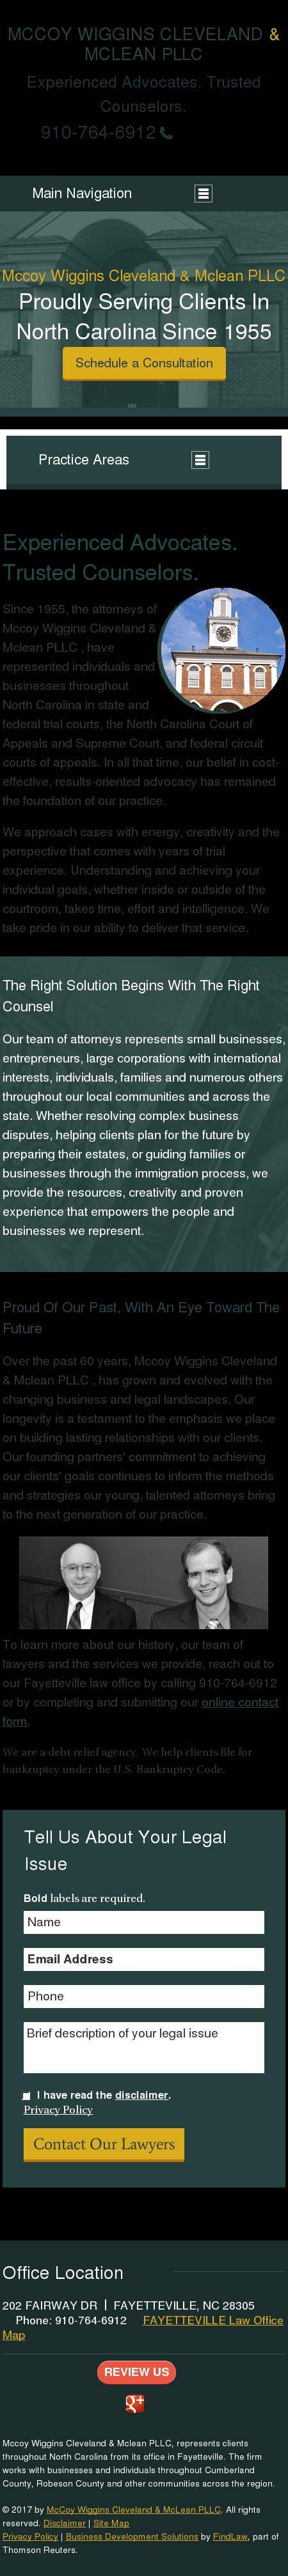 McCoy Weaver Wiggins Cleveland Rose Ray PLLC - Fayetteville NC Lawyers